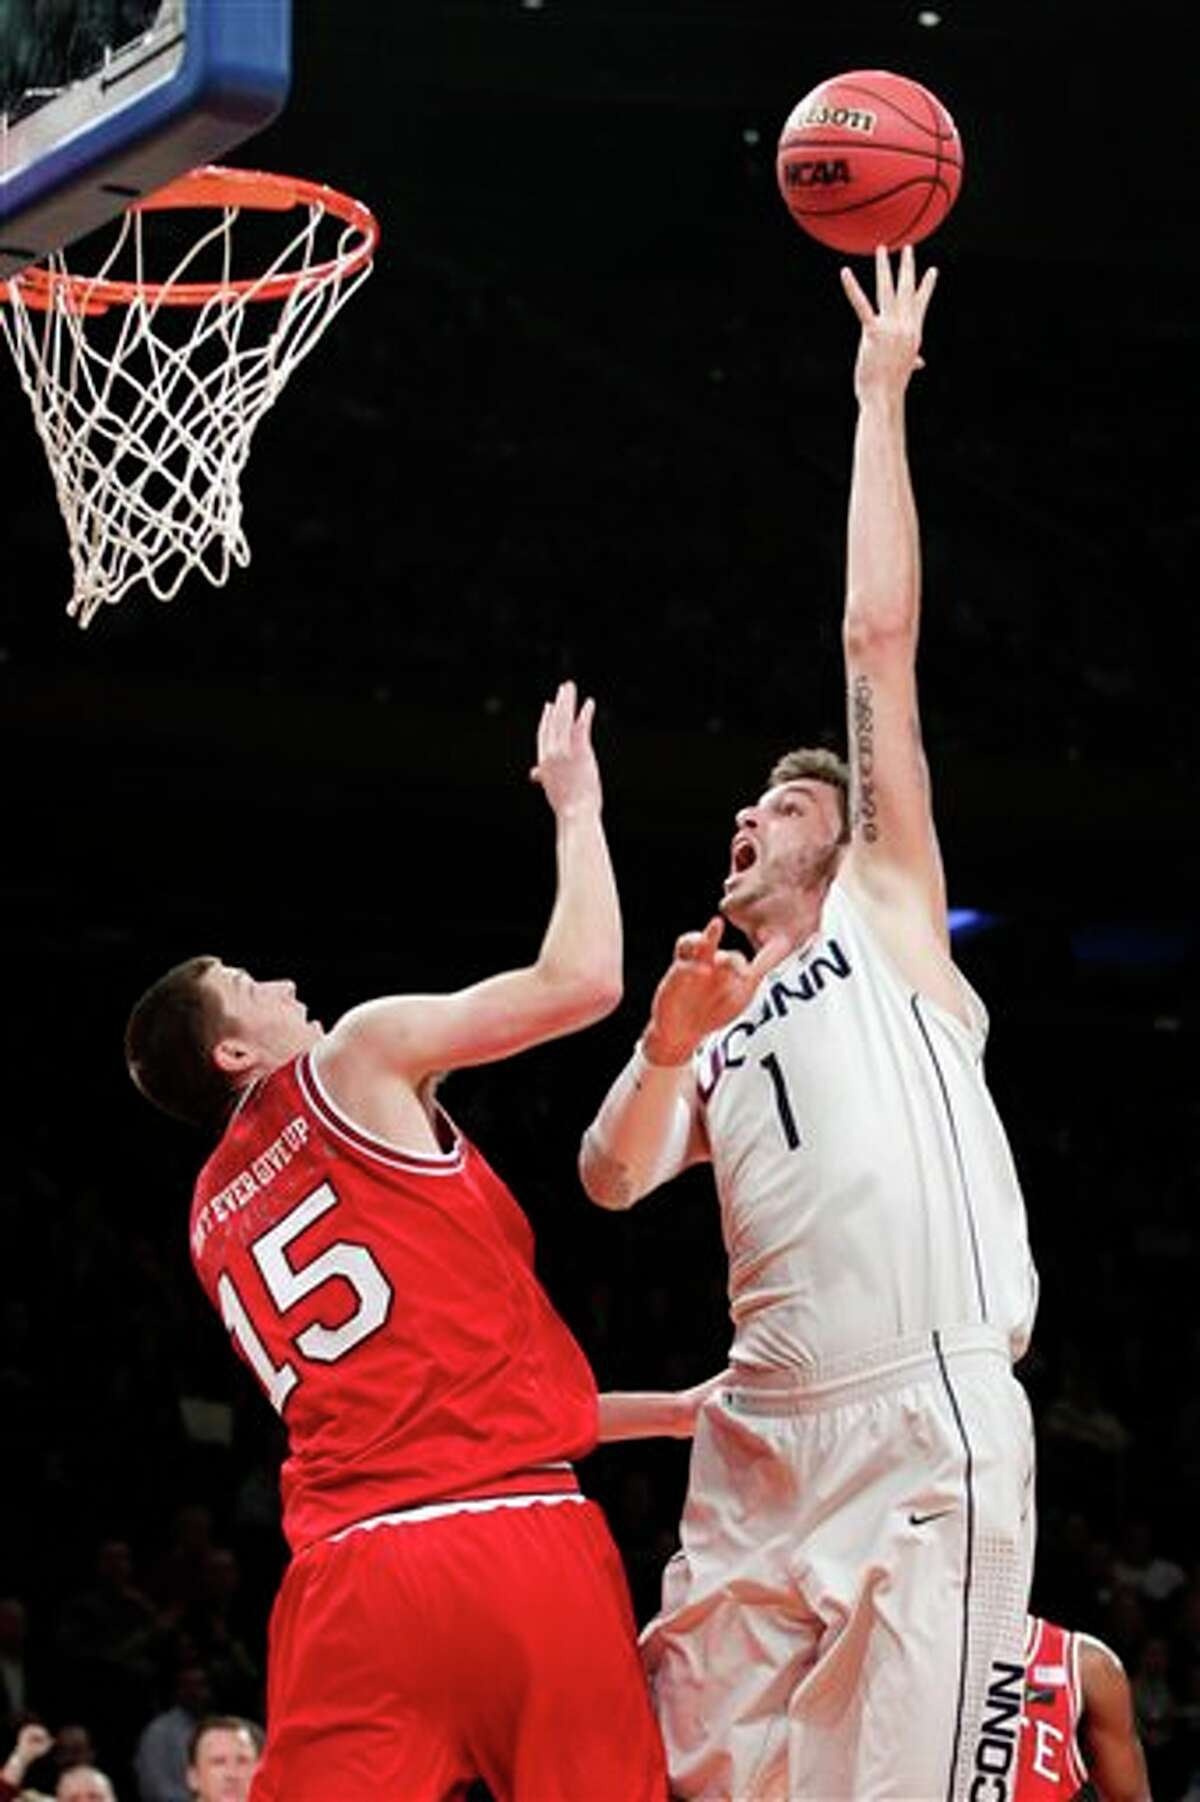 Connecticut's Enosch Wolf (1) shoots over North Carolina State's Scott Wood (15) during the first half of their NCAA college basketball game in the Jimmy V Classic at Madison Square Garden, Tuesday, Dec. 4, 2012, in New York. (AP Photo/Frank Franklin II)